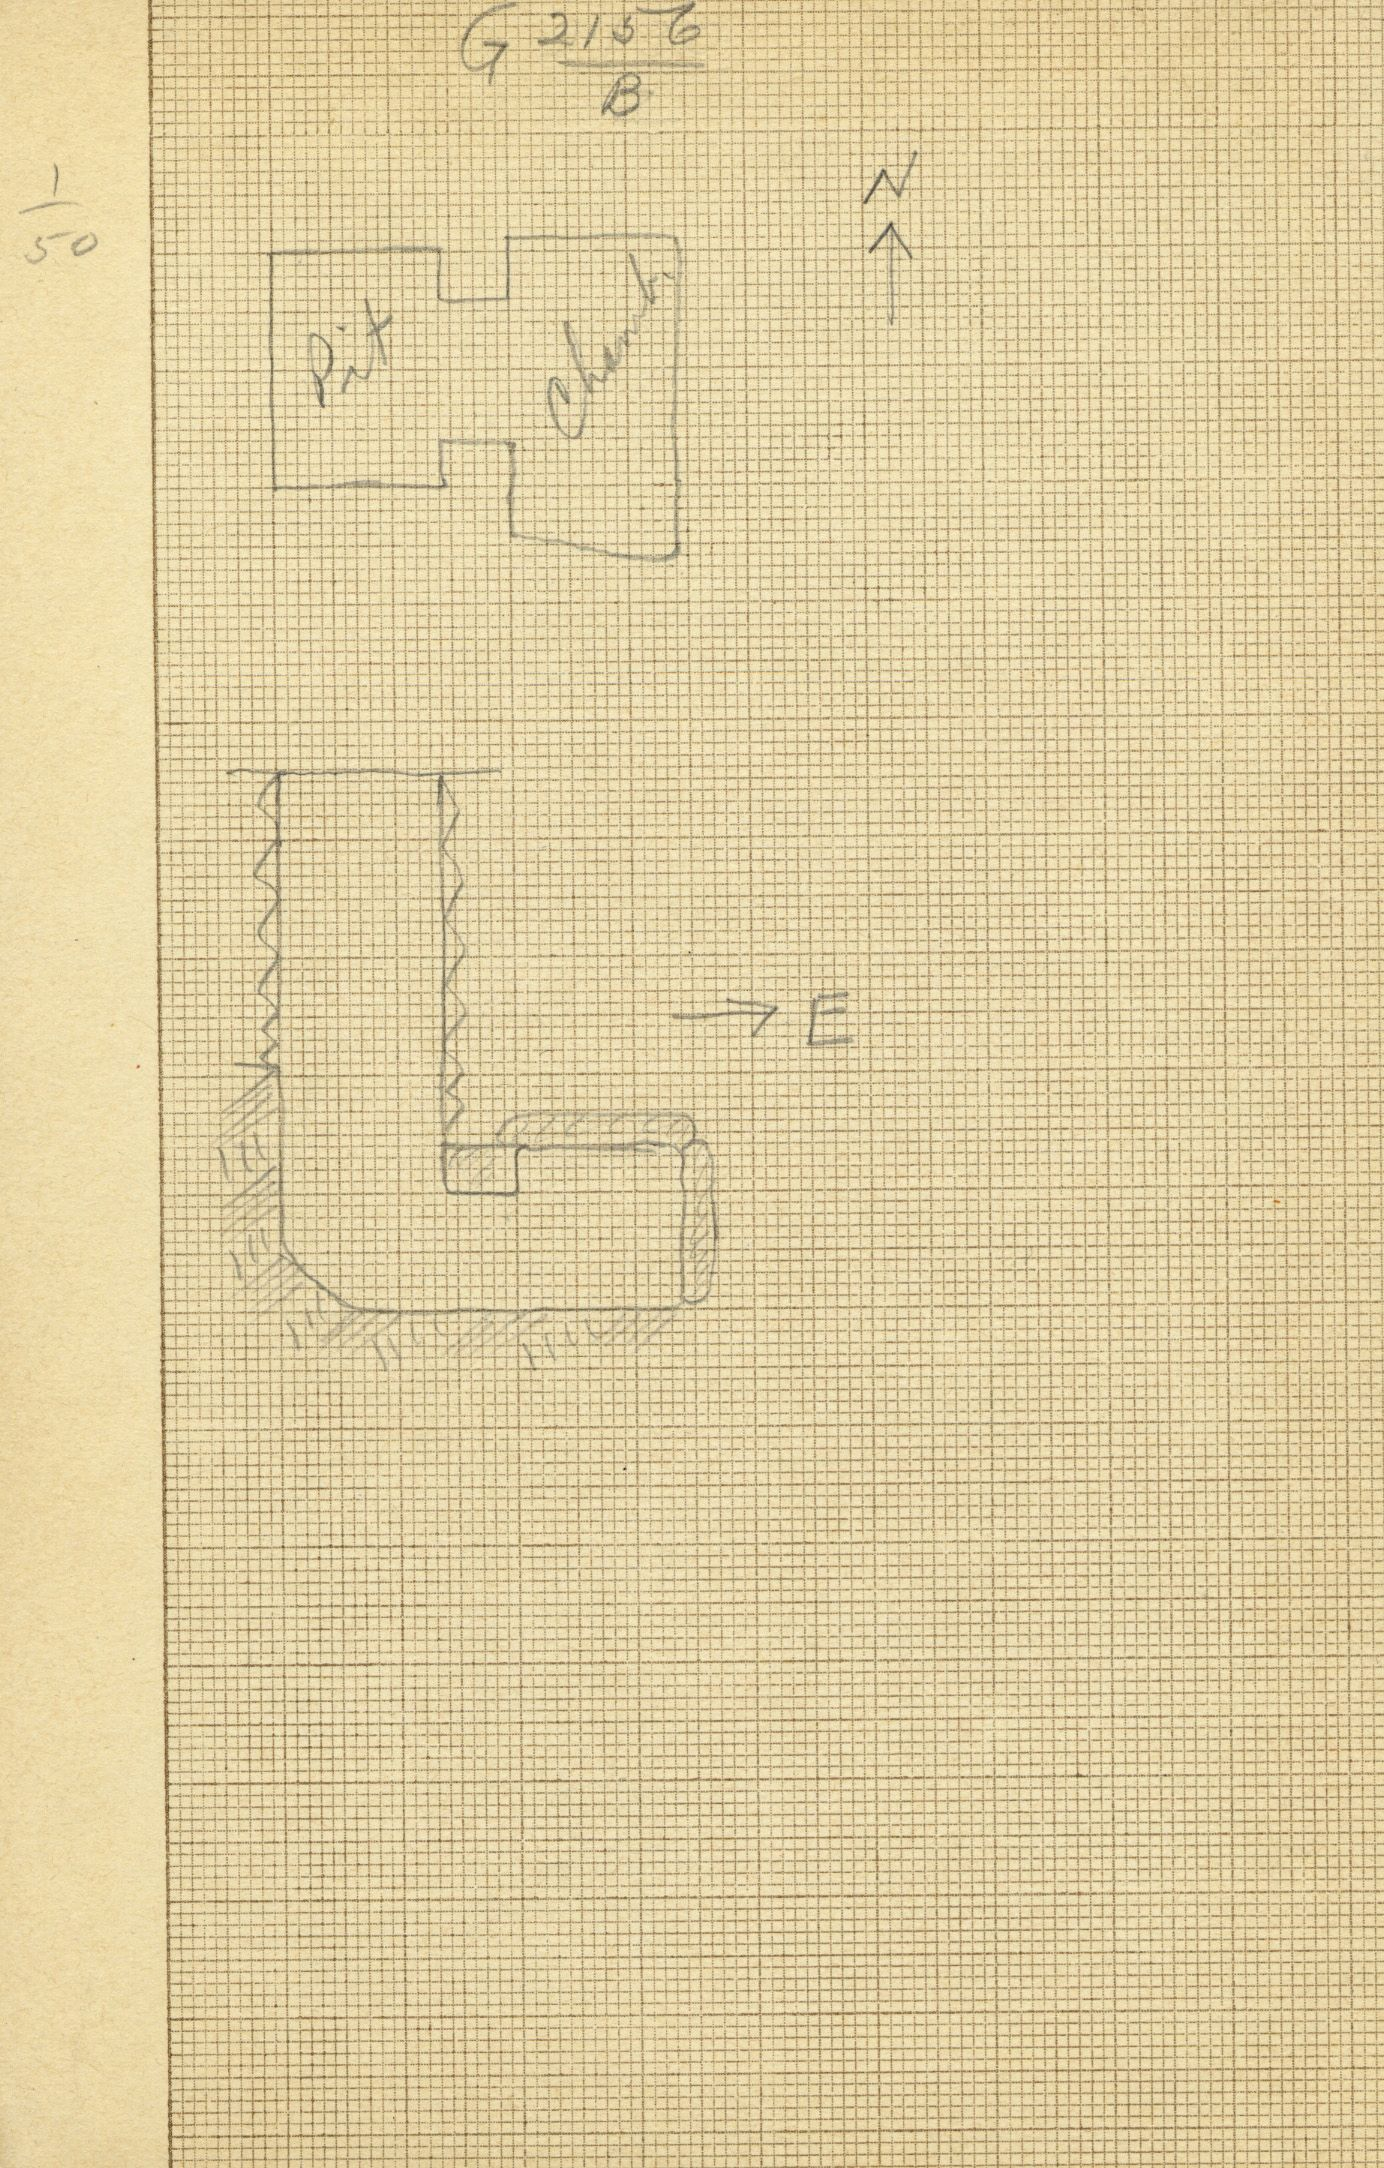 Maps and plans: G 2156', Shaft B